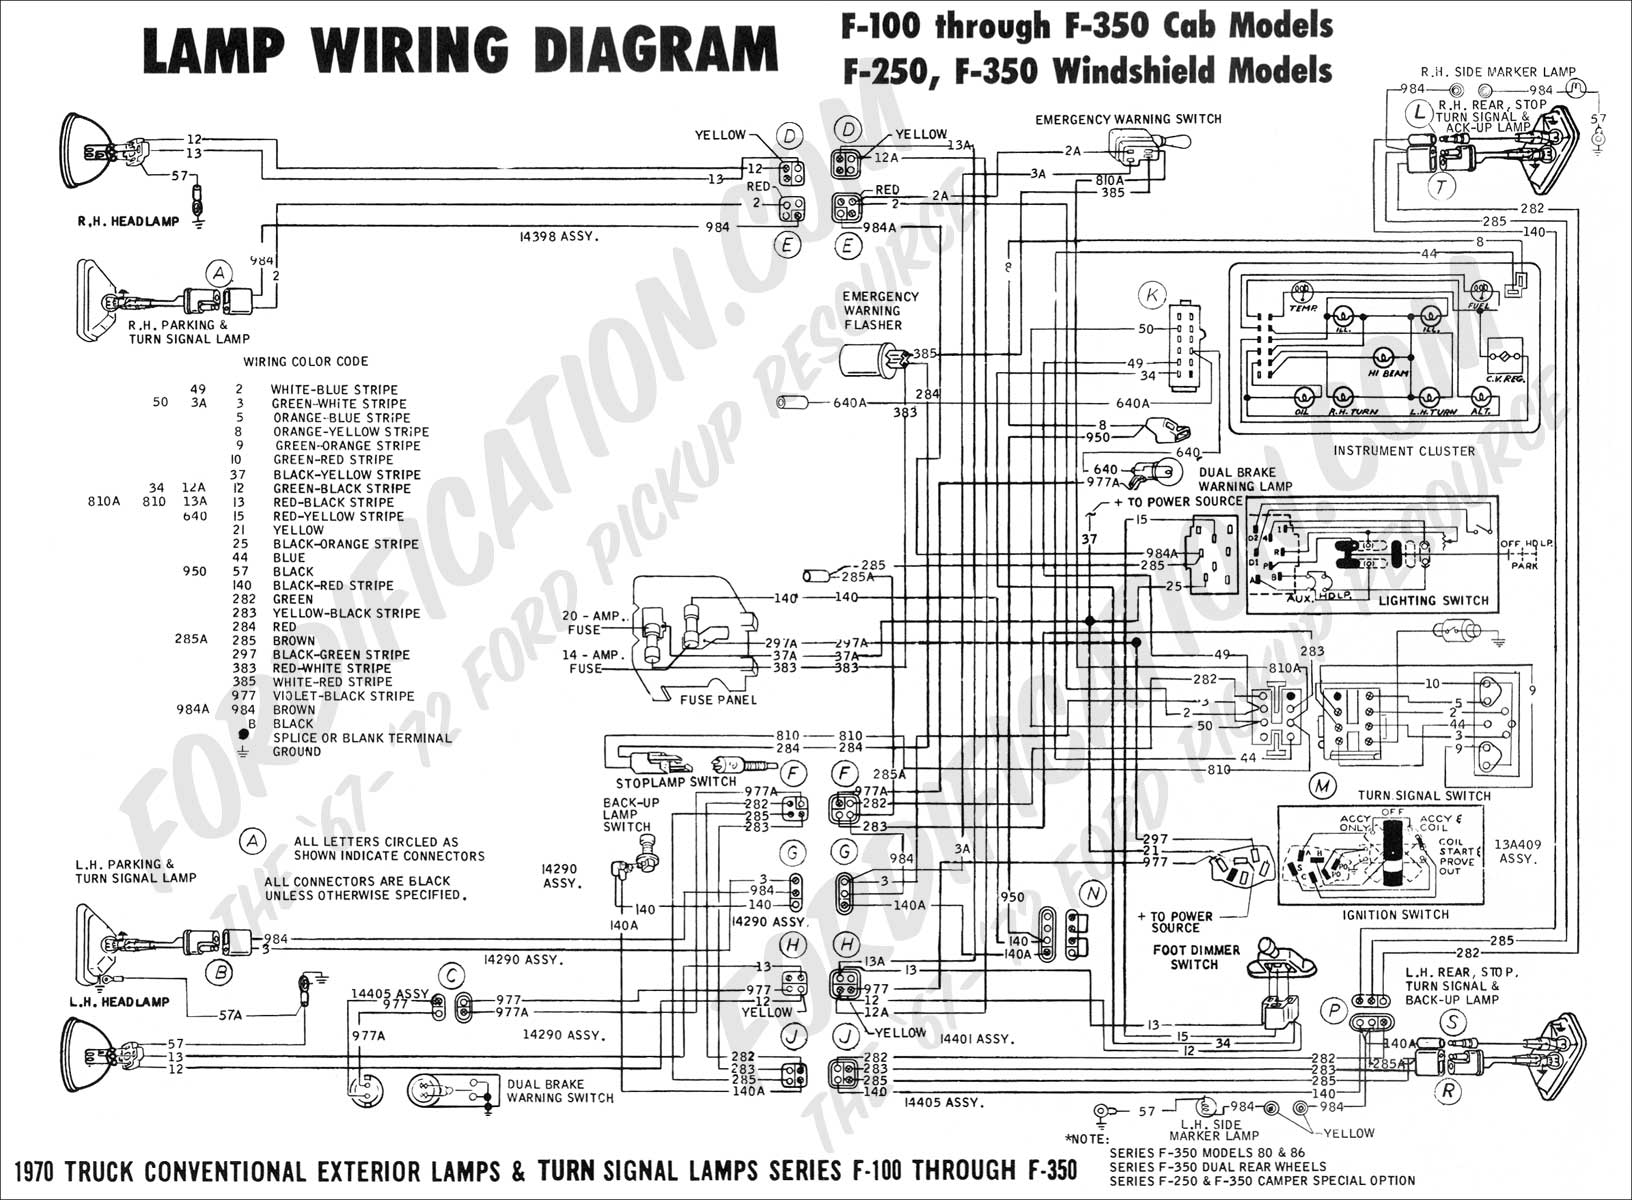 2003 f350 wiring diagram search for wiring diagrams u2022 rh stephenpoon co 2000 Ford F-250 Fuse Diagram 1999 F250 Wiring Diagram